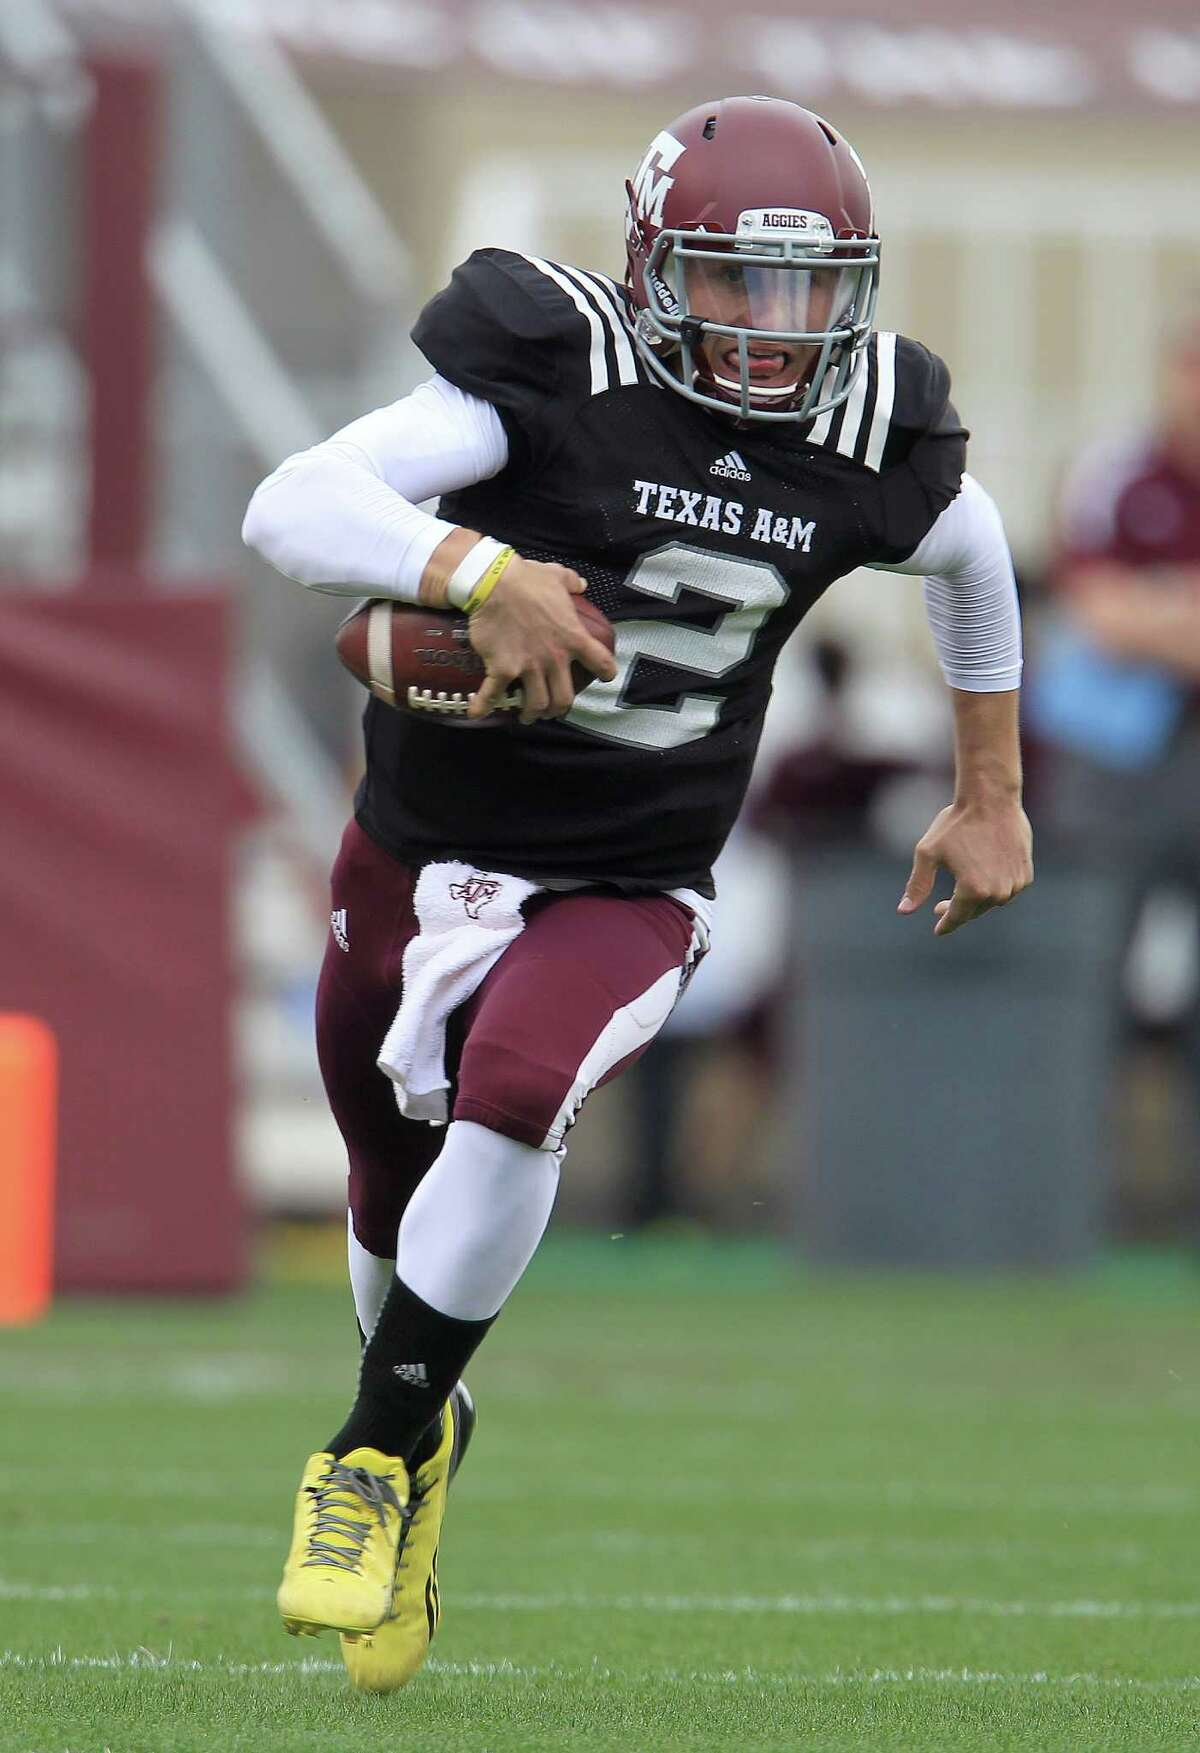 Texas A&M Aggies quarterback Johnny Manziel (2) scrambles with the ball during the first half of the Texas A&M University's Maroon & White, spring game at Kyle Field, Saturday, April 13, 2013, in College Station. ( Karen Warren / Houston Chronicle )